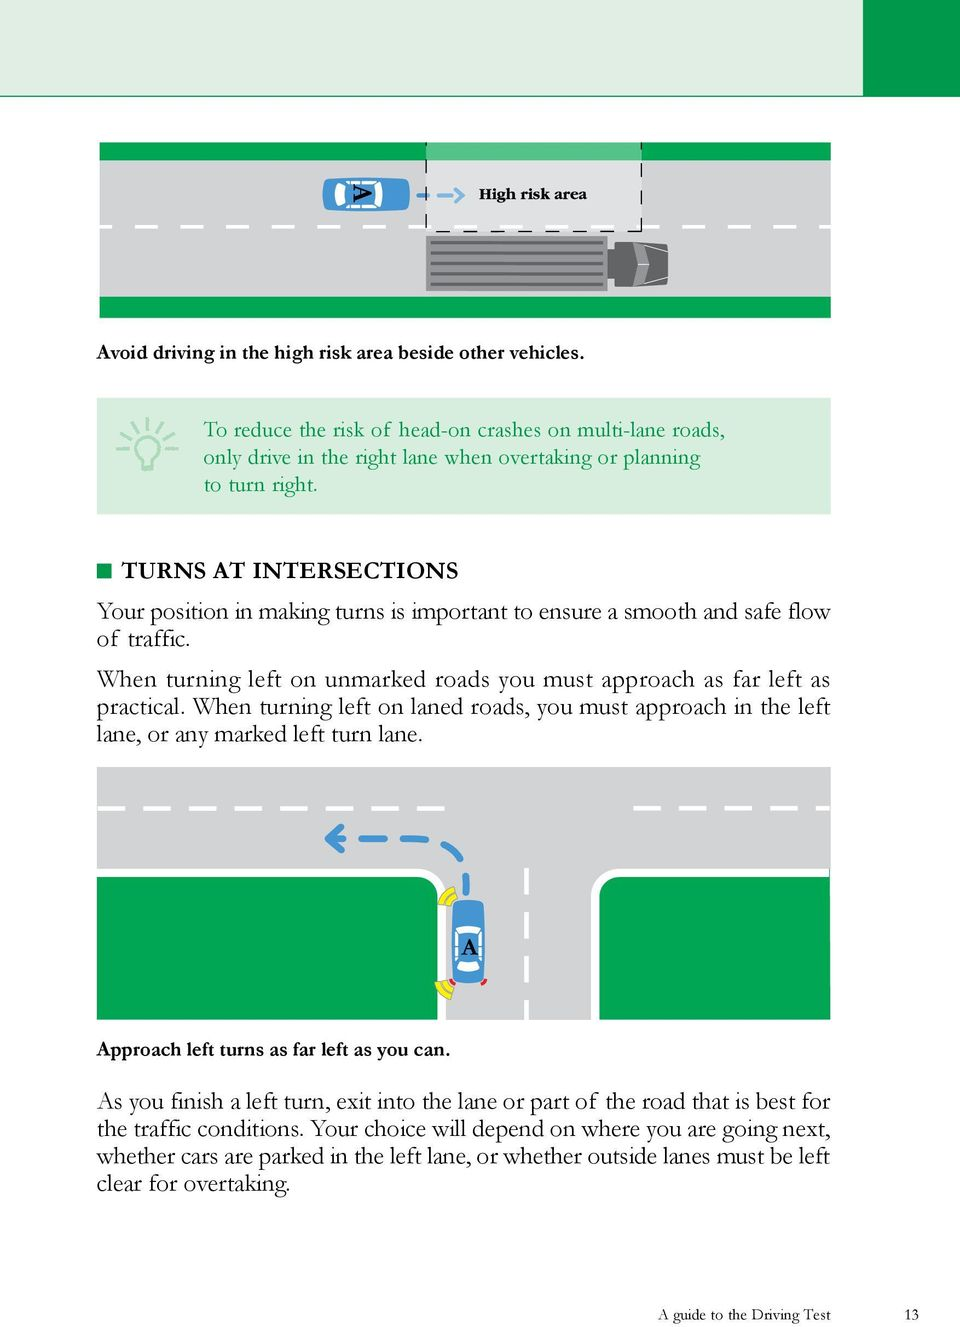 When turning left on laned roads, you must approach in the left lane, or any marked left turn lane. pproach left turns as far left as you can.